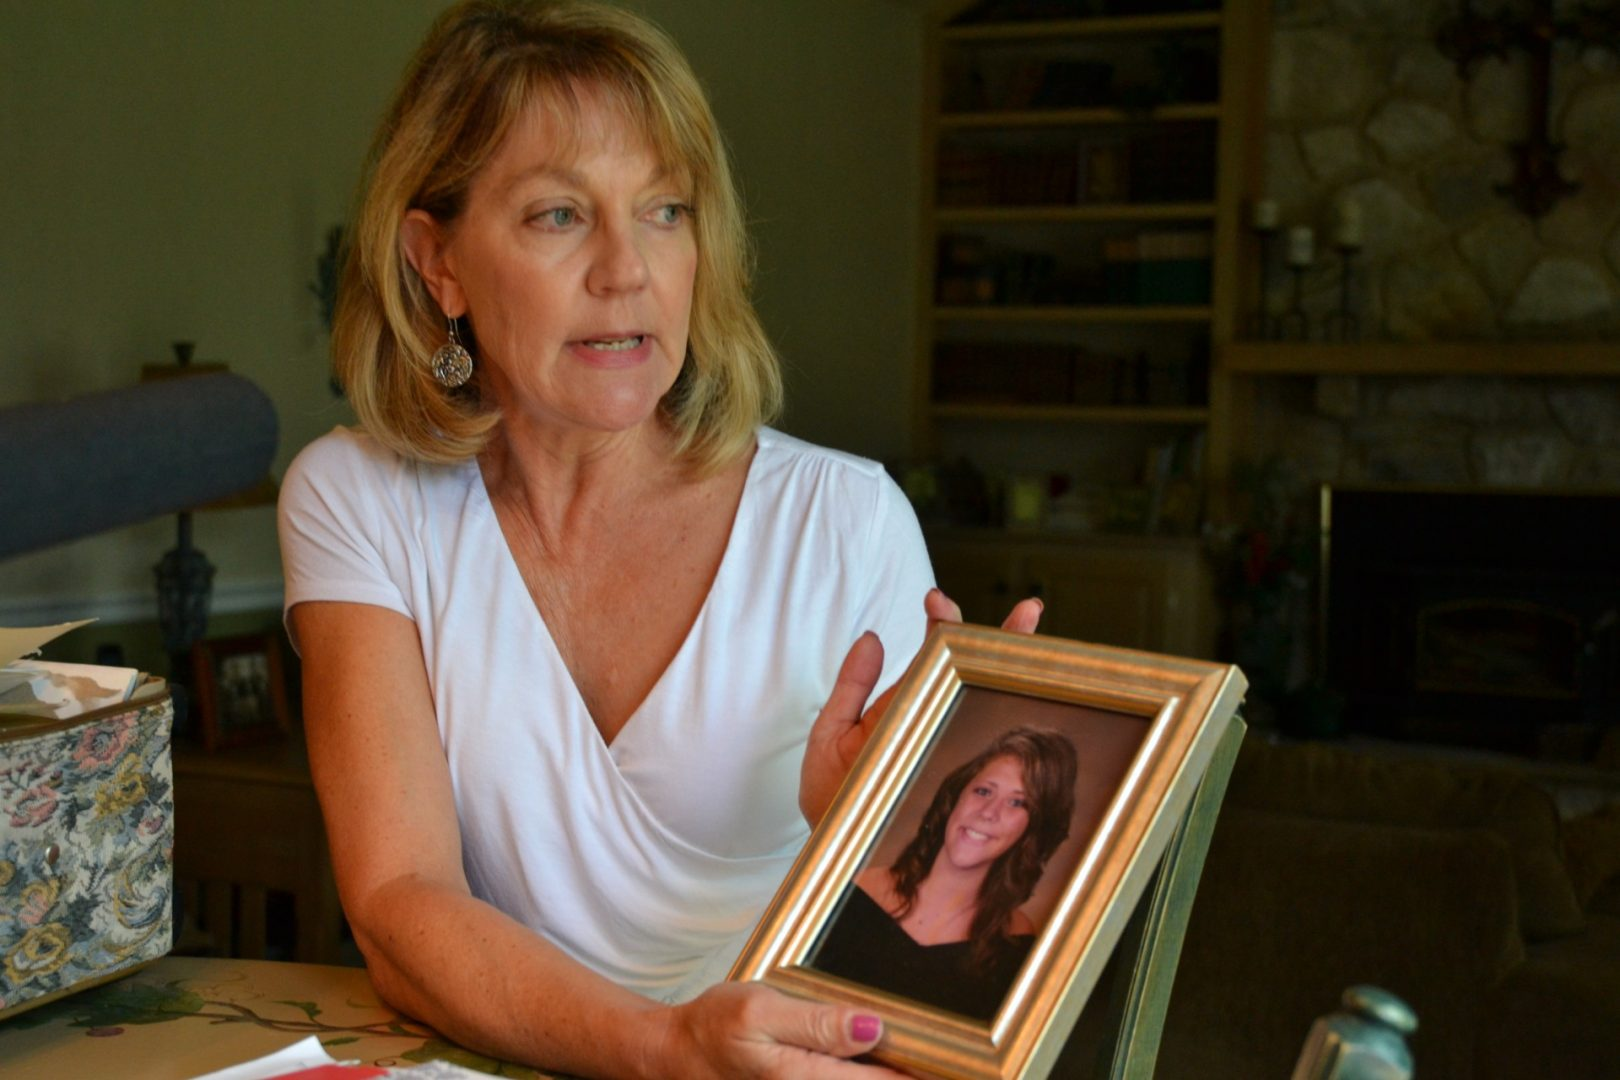 Martha Stringer holds a photo of her daughter, Kim, from when she was in high school. Kim is 27 now.